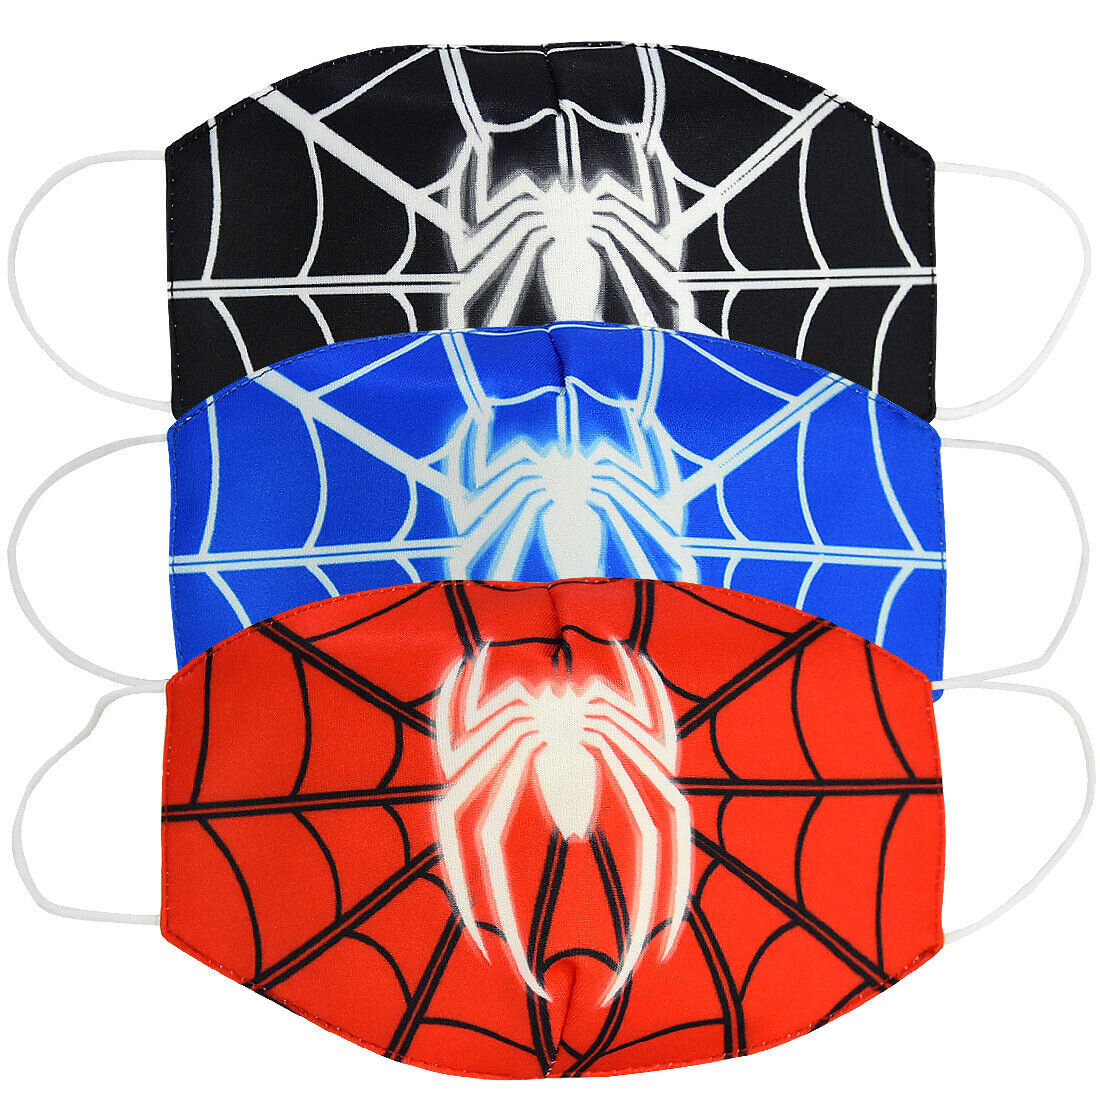 3 pcs Comic Hero Spider Man Web Style Cotton Masks Half Face Cartoon Mouth Cover Accessories